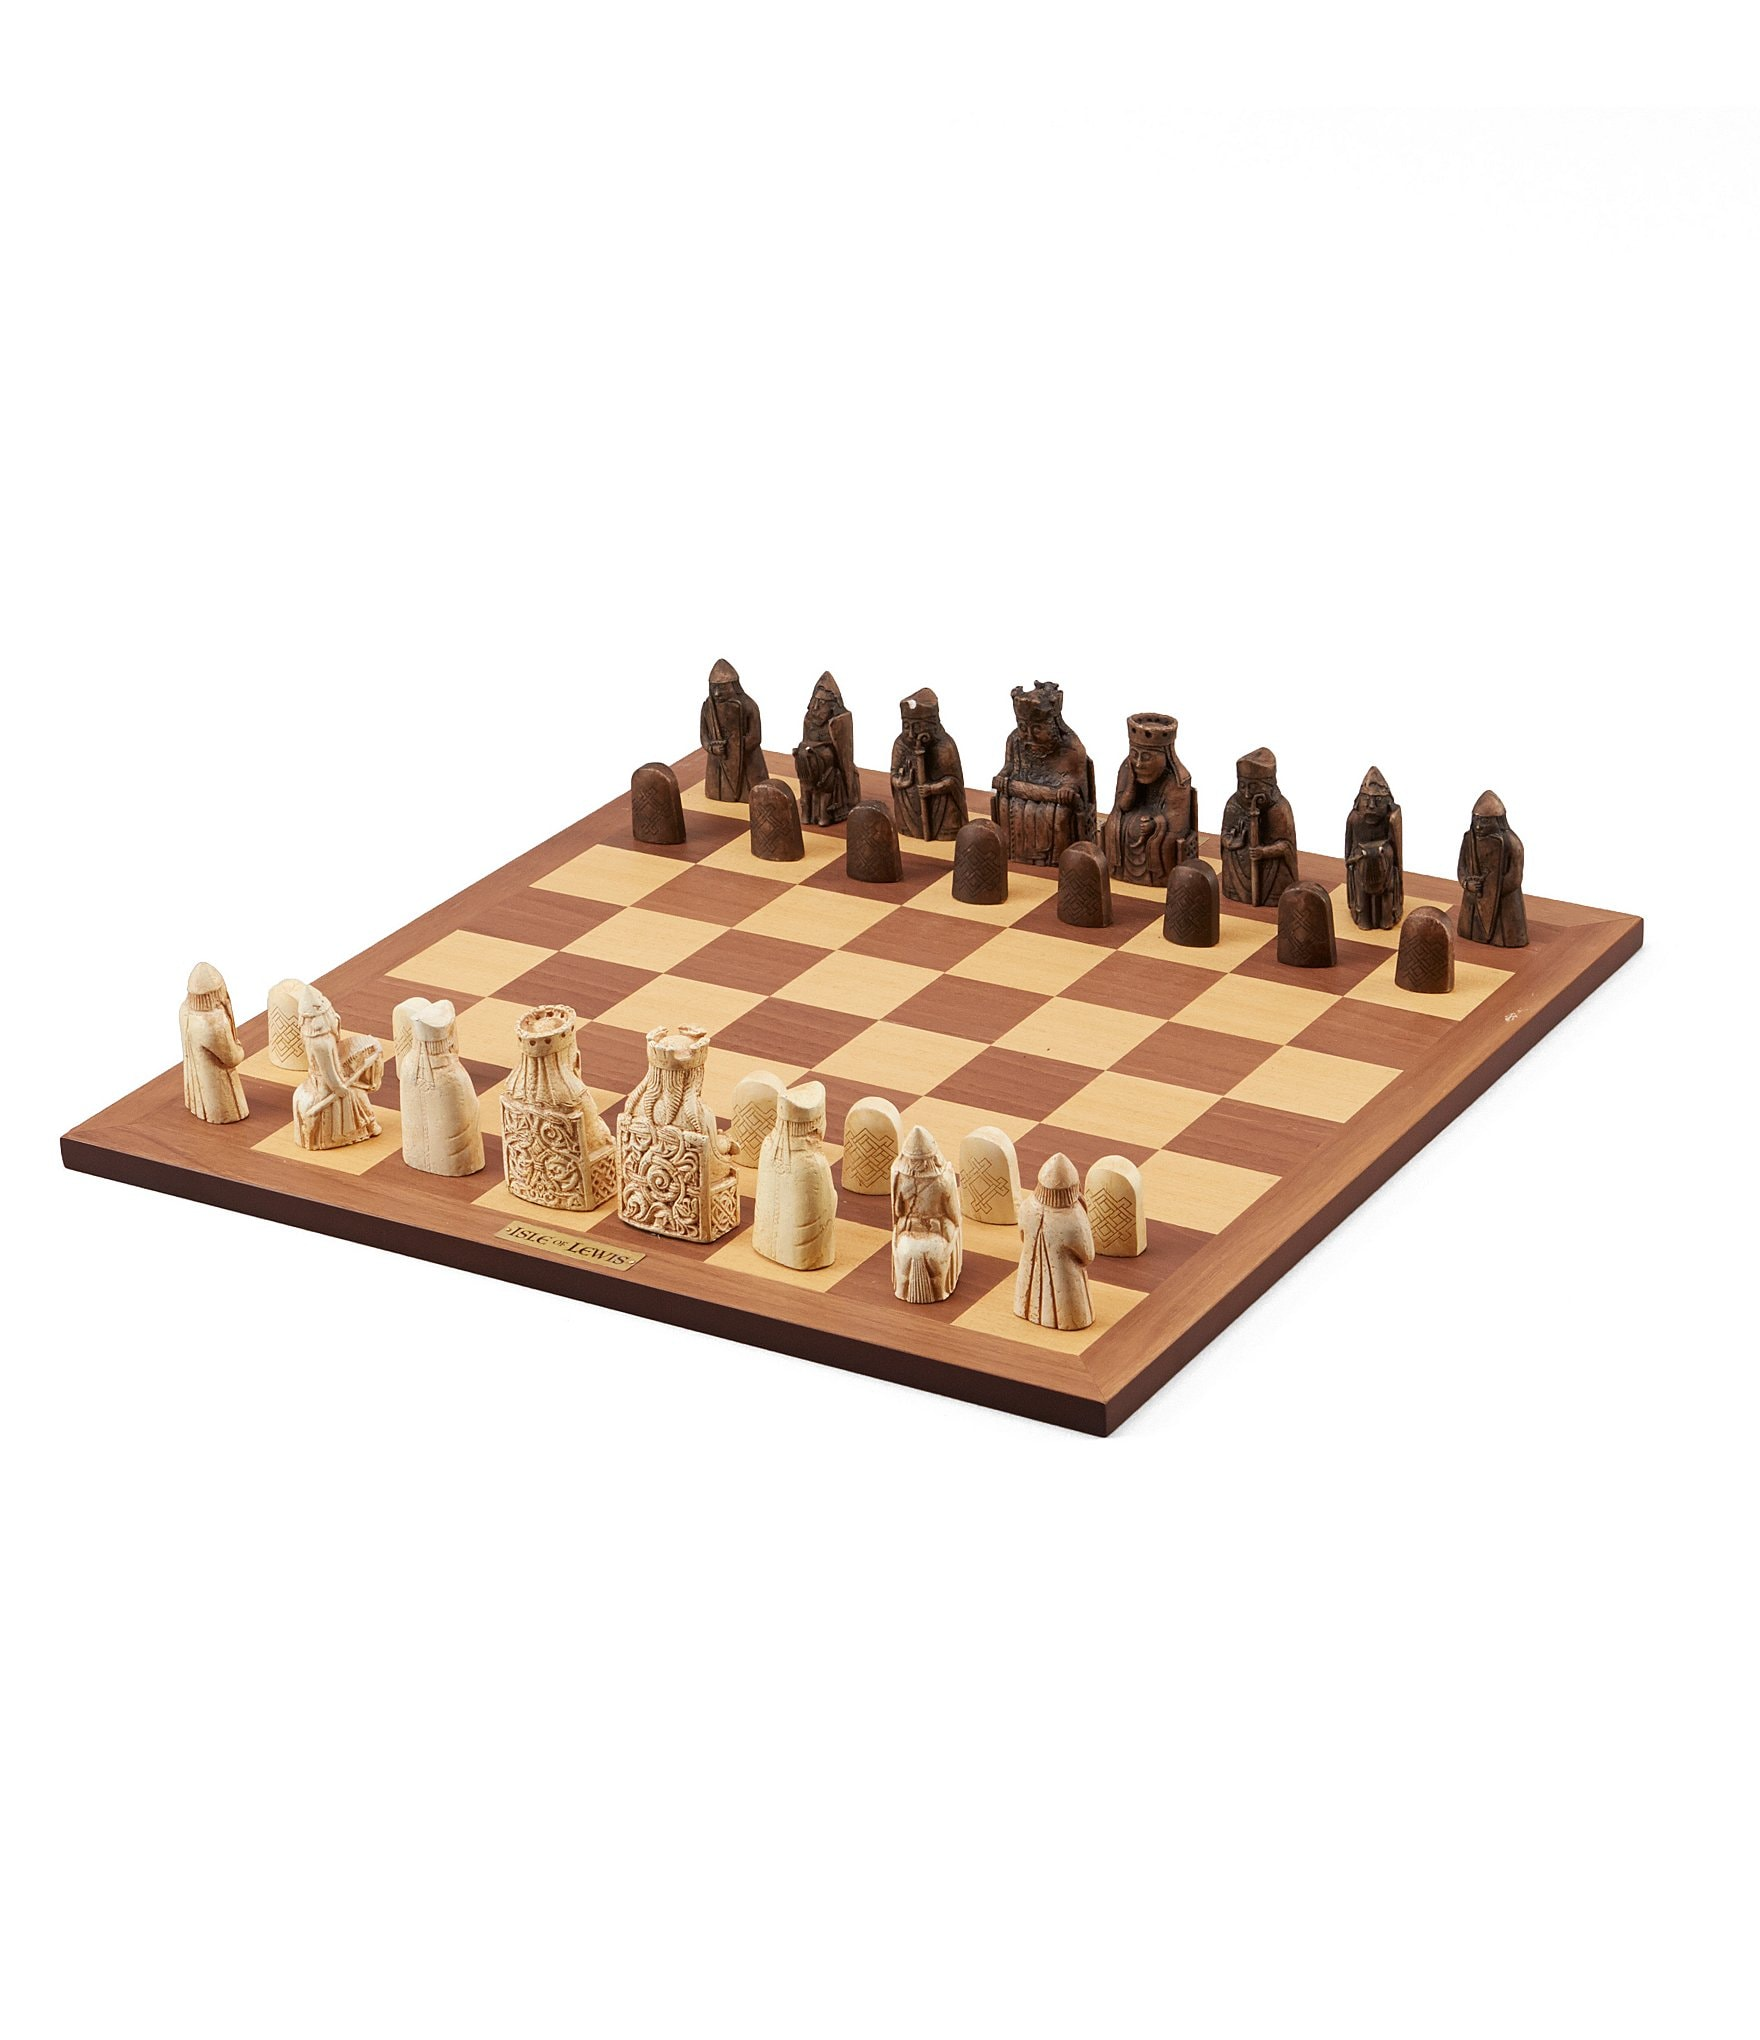 Isle of lewis deluxe chess set dillards - Deluxe chess sets ...